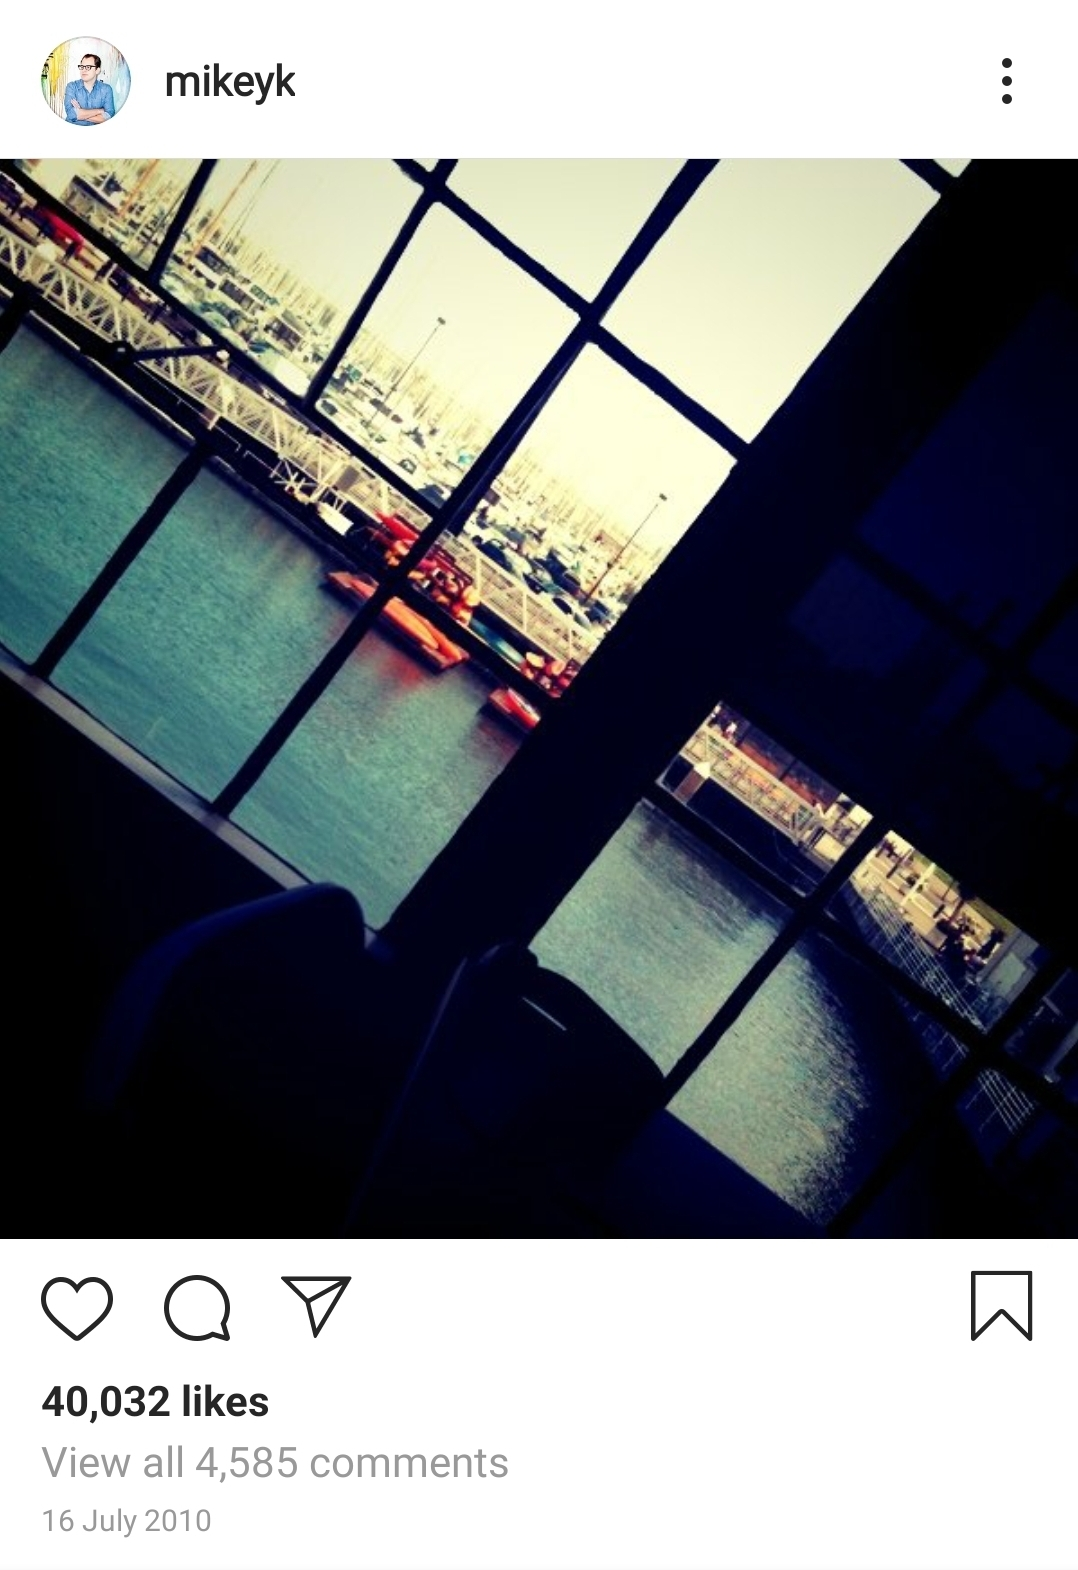 First ever Instagram post of San Francisco Pier 38 mikeyk